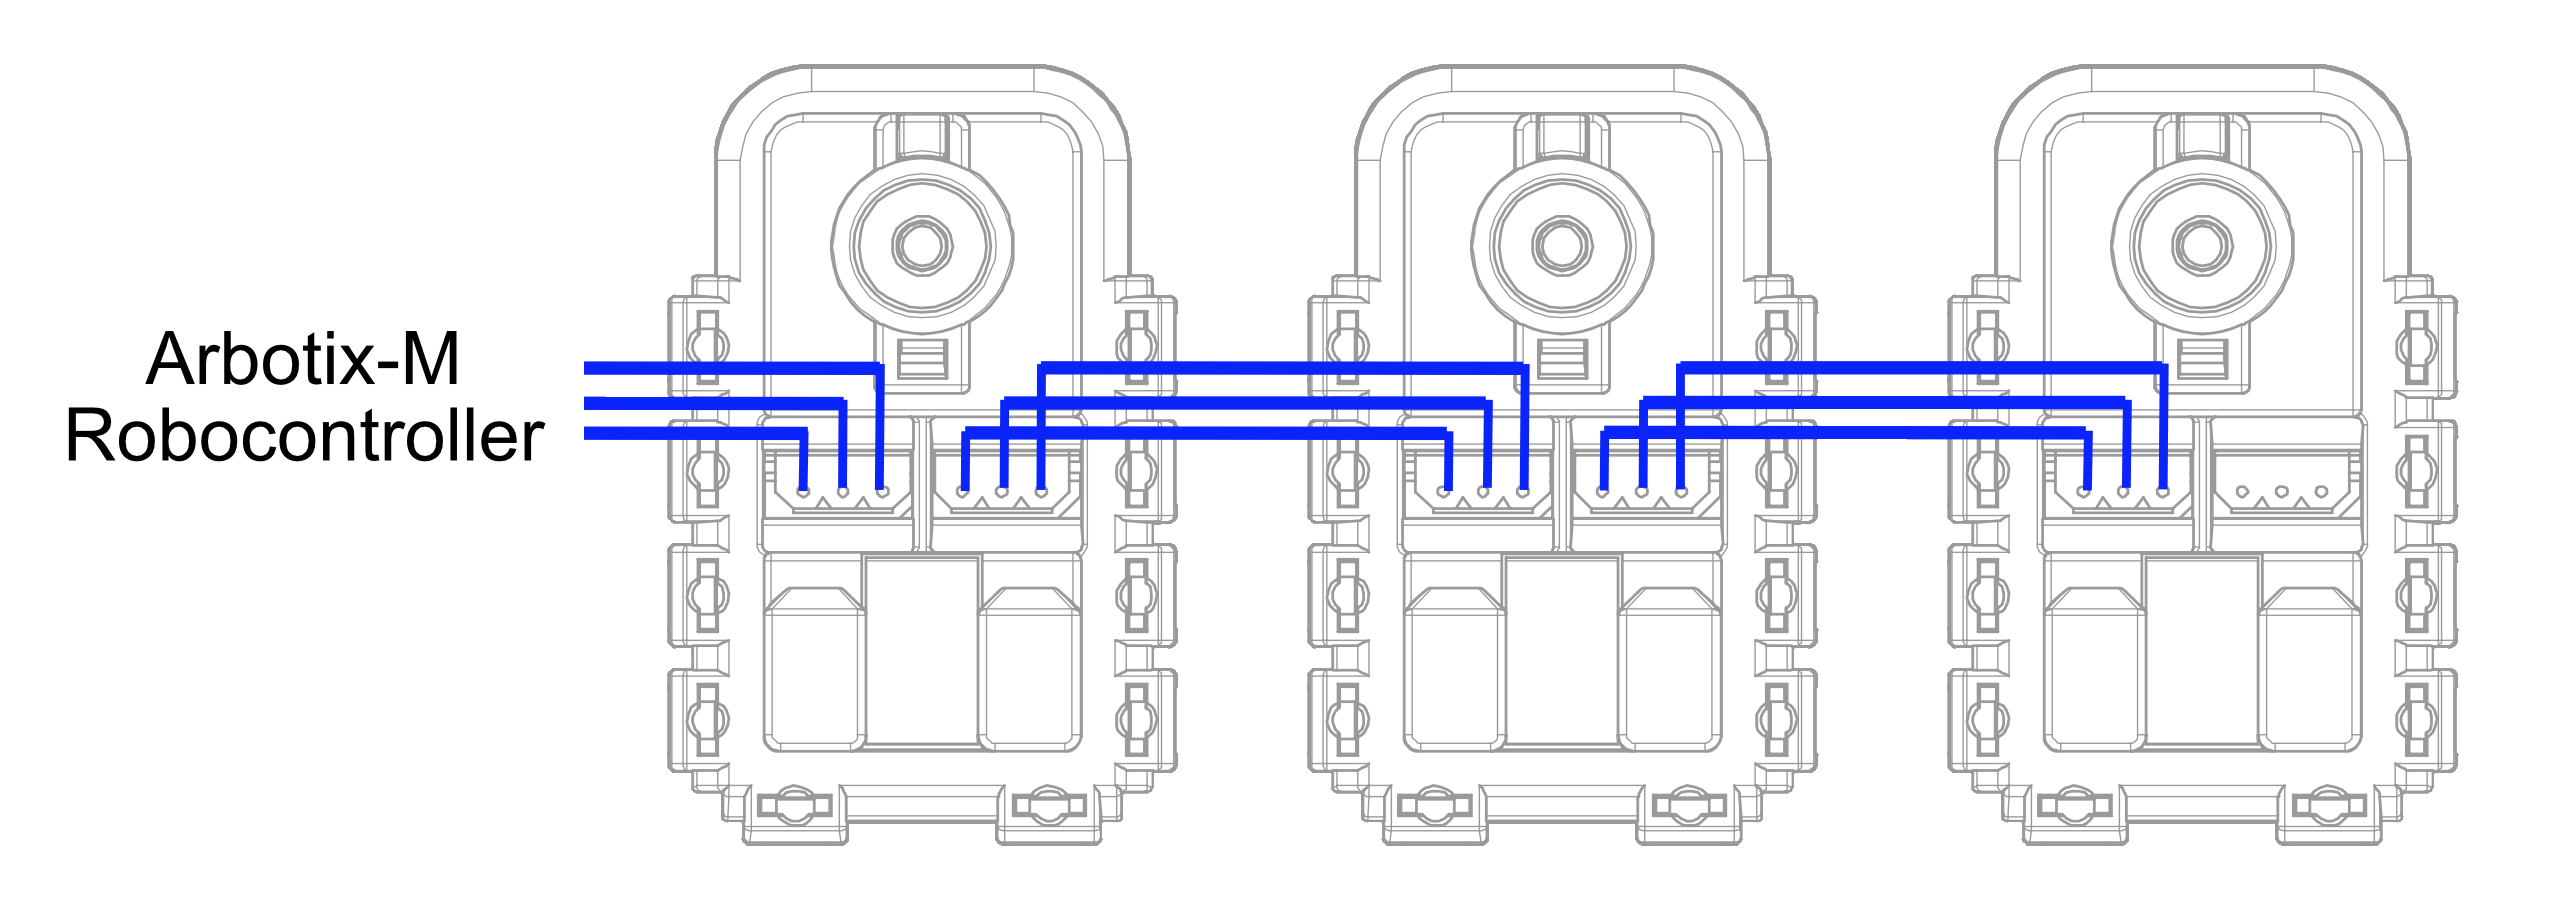 Diagram of chain of Dynamixel servos